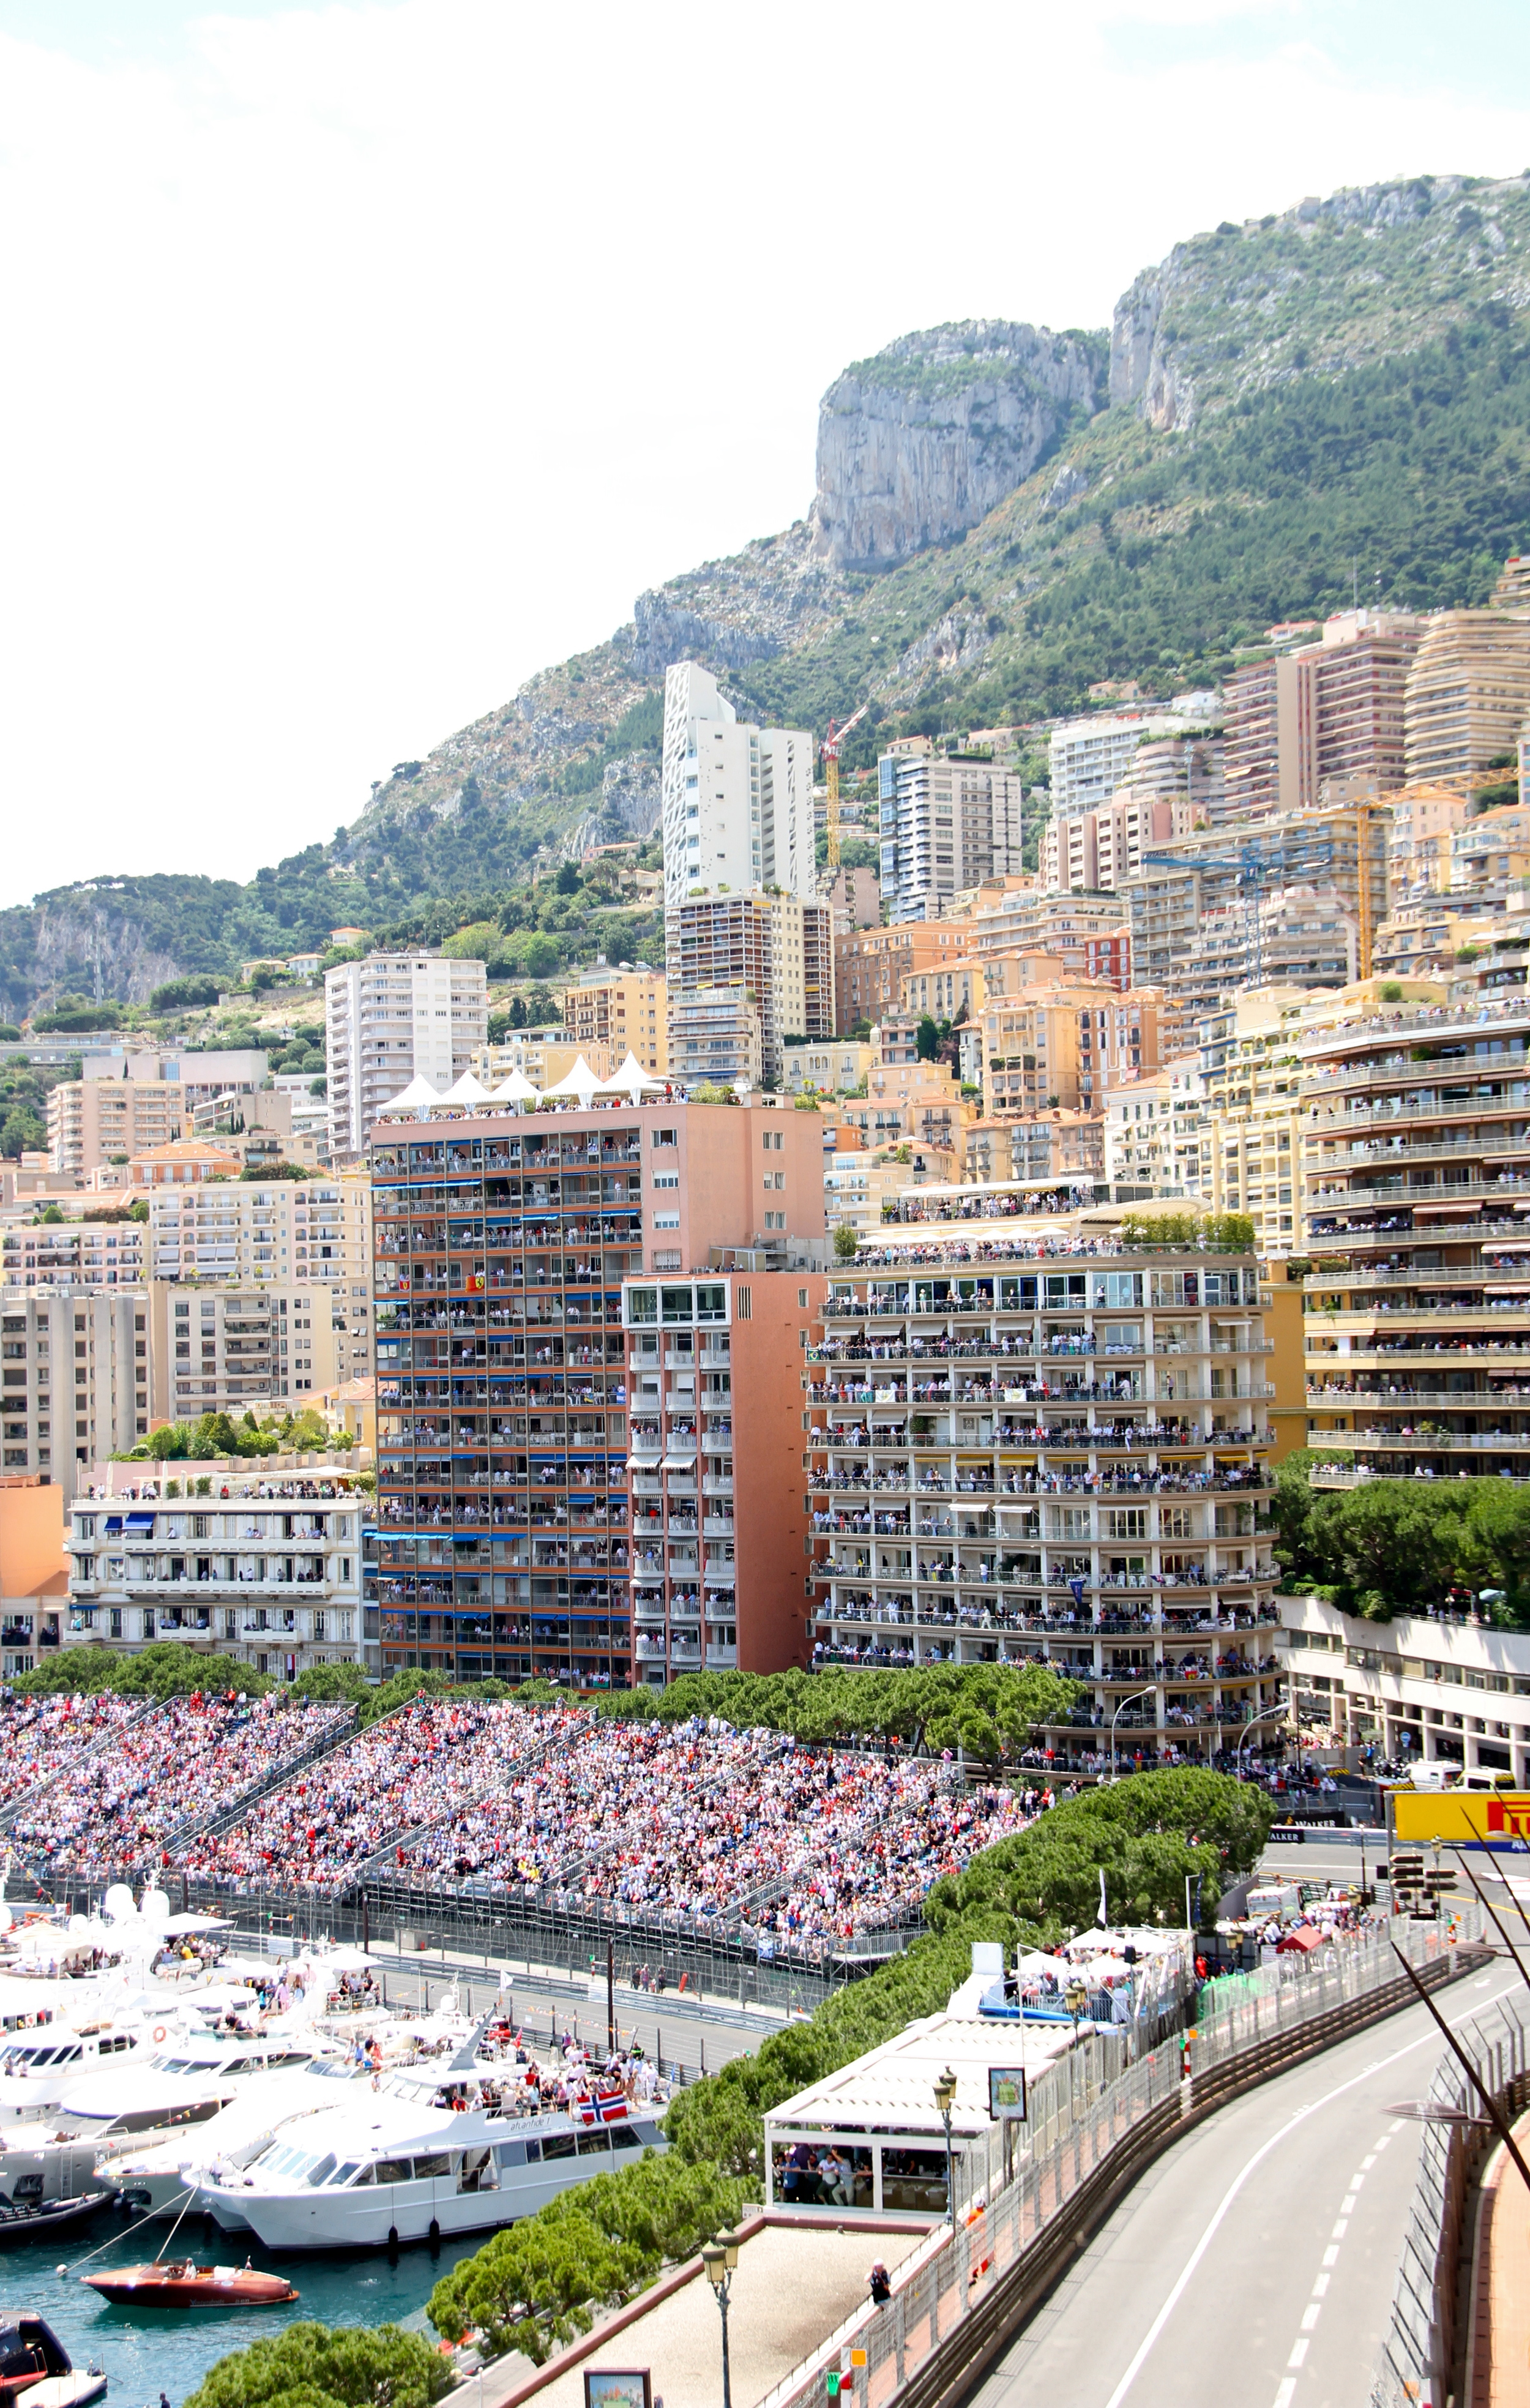 The stands are packed. Ready for the main event, Monaco.